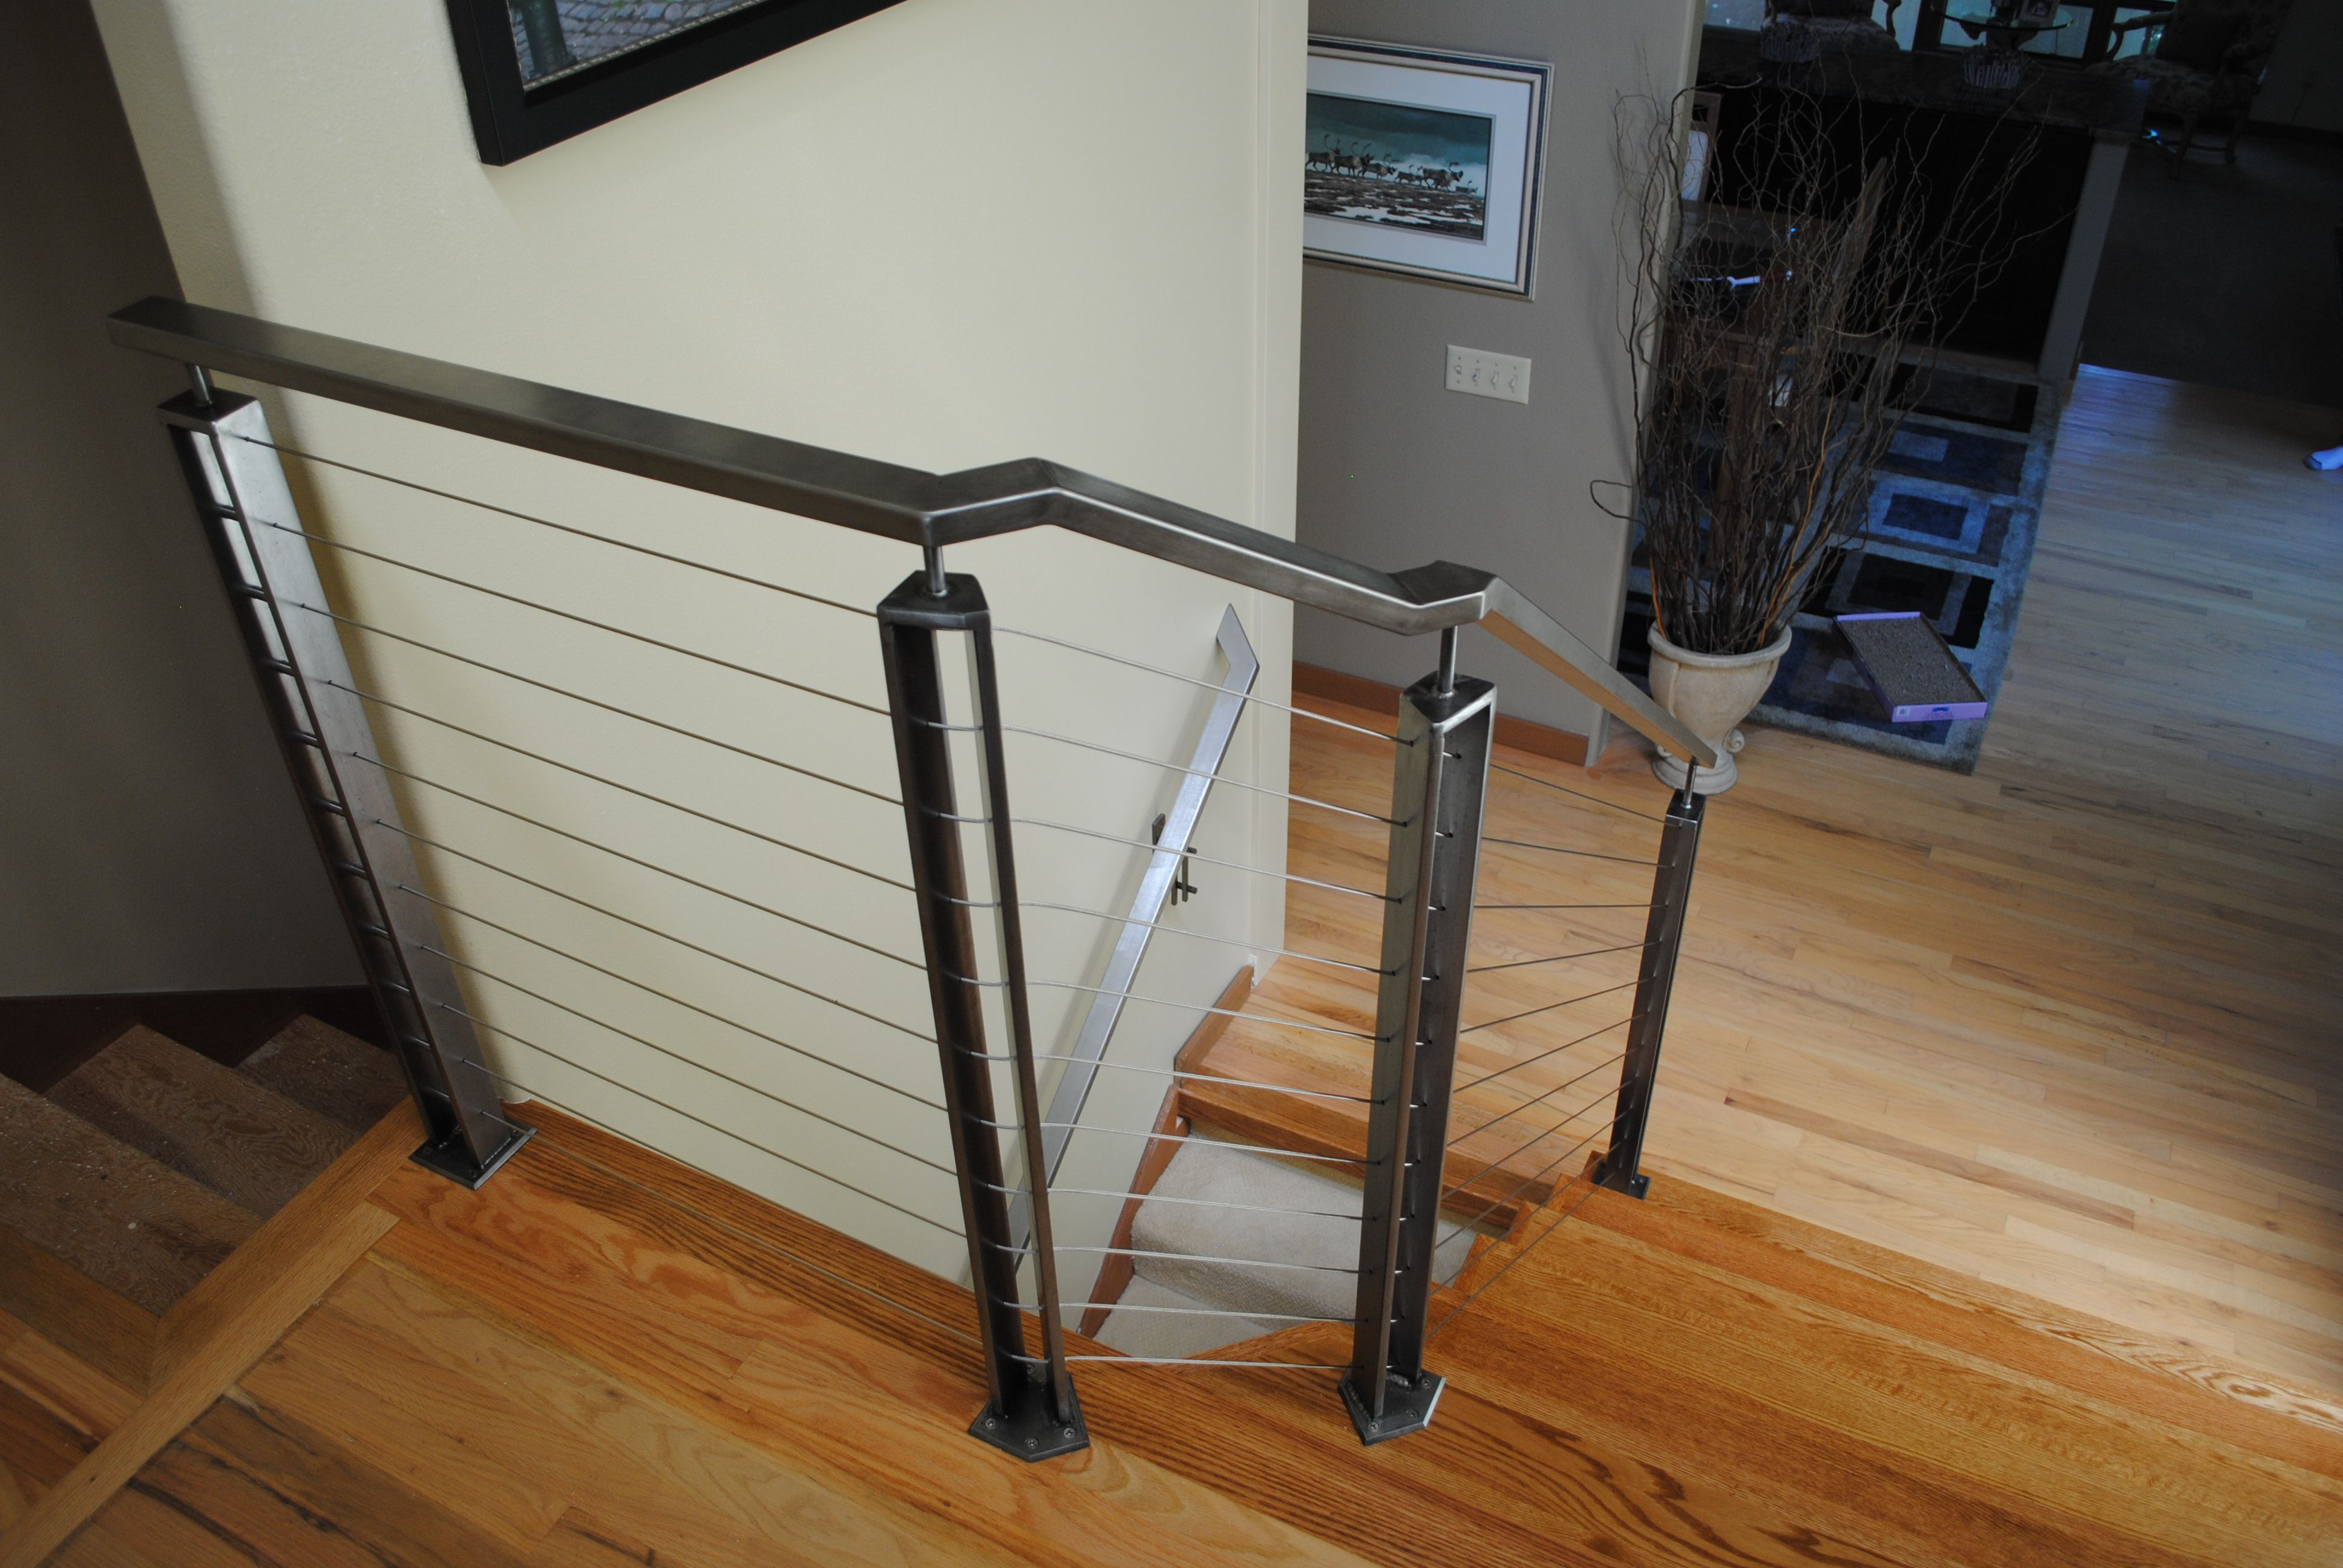 Elegant Application Of Galvanized Steel With Stainless Steel Cable Infill On A Wood Staircase Wood Staircase Steel Railing Wardrobe Rack